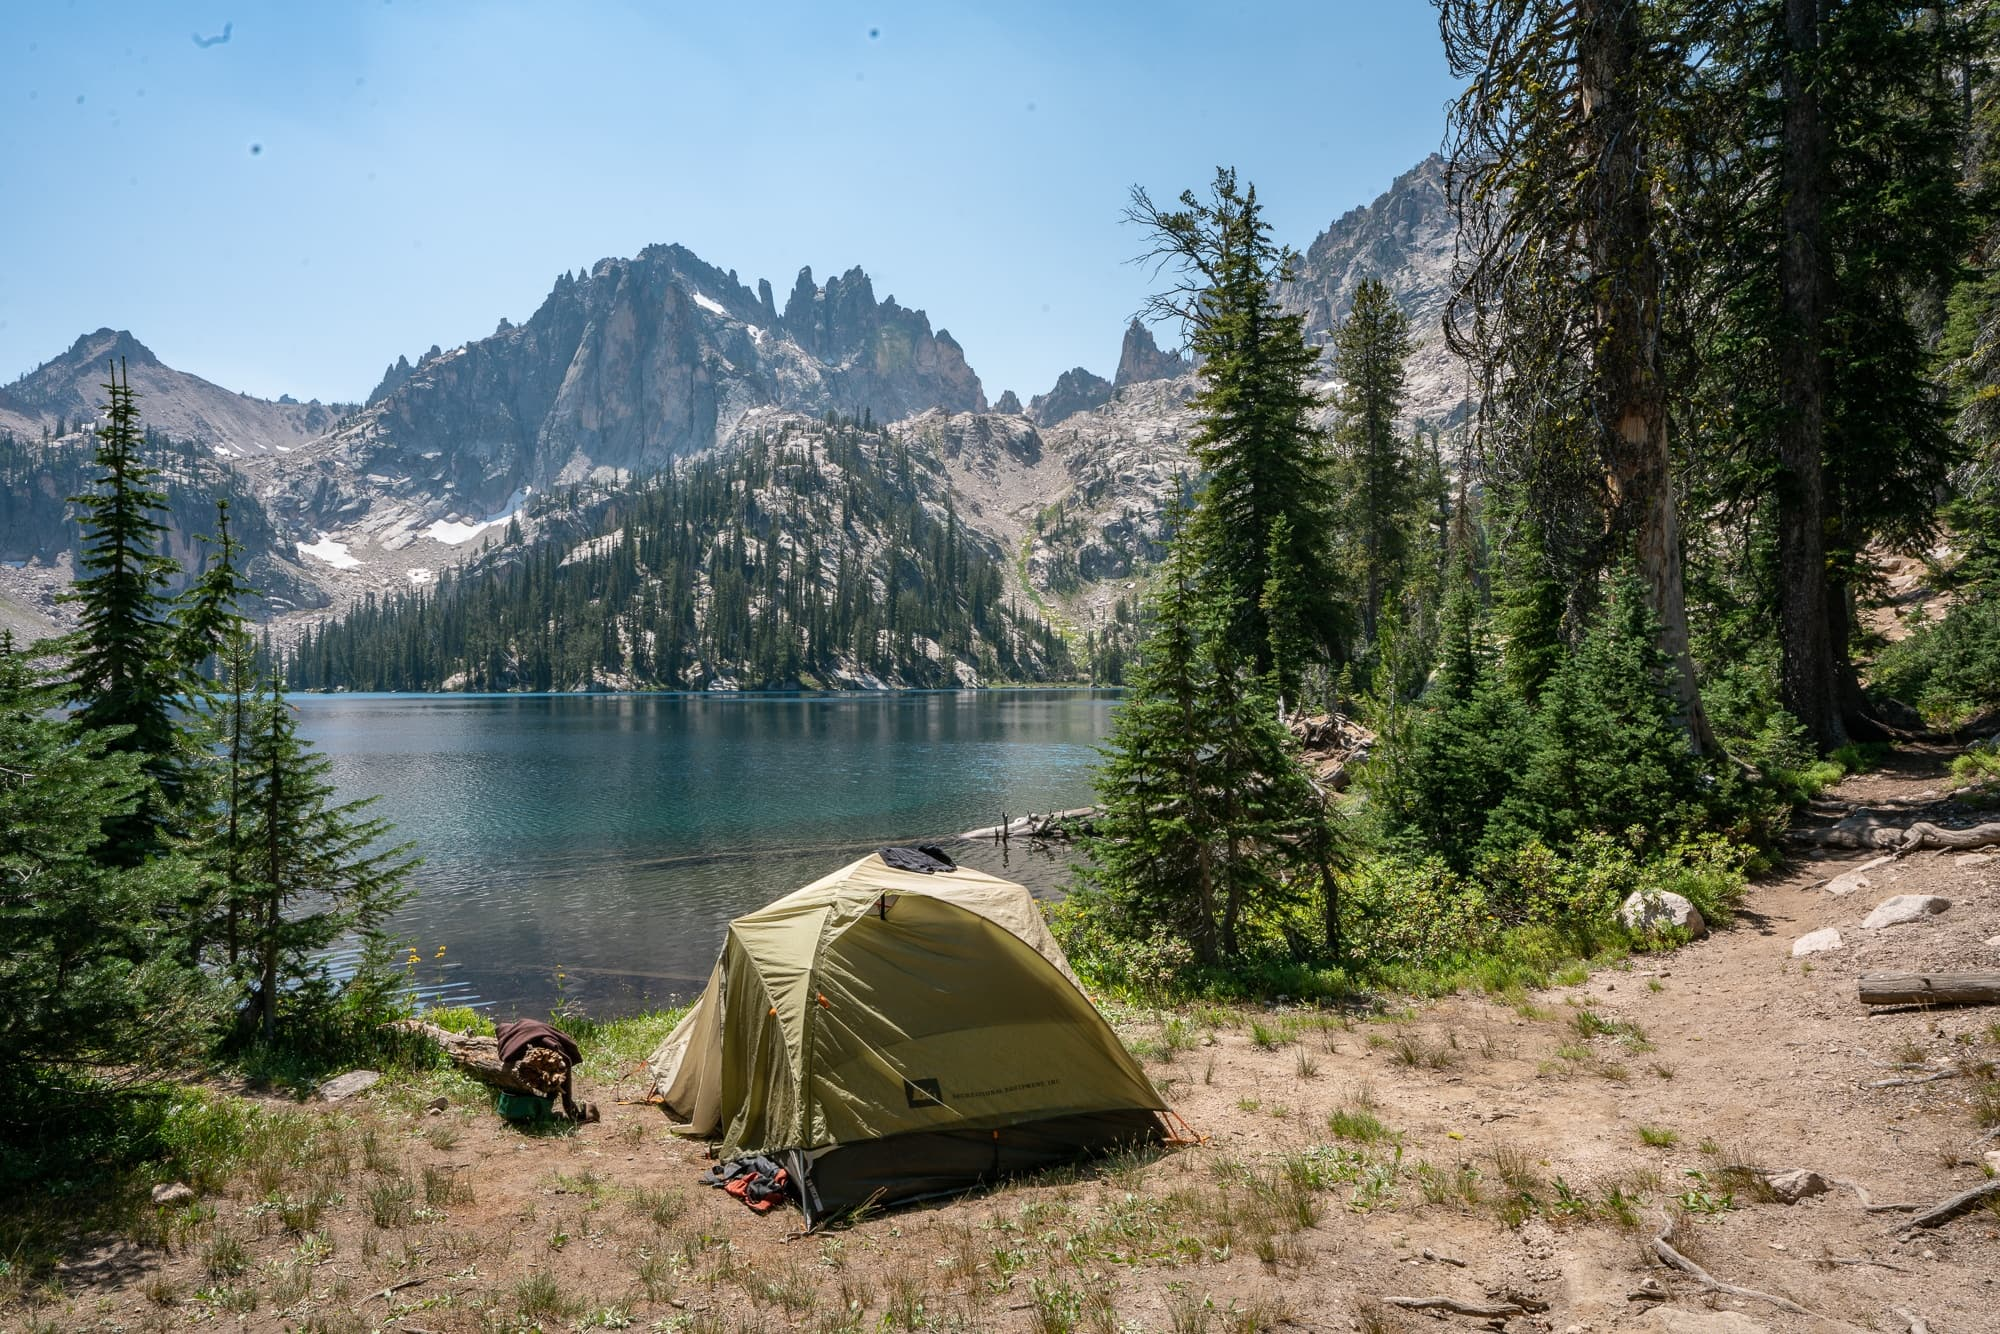 This campsite is ILLEGAL and violates all Leave No Trace guidelines. Learn what to look for in a campsite that follows Leave No Trace and obeys regulations.